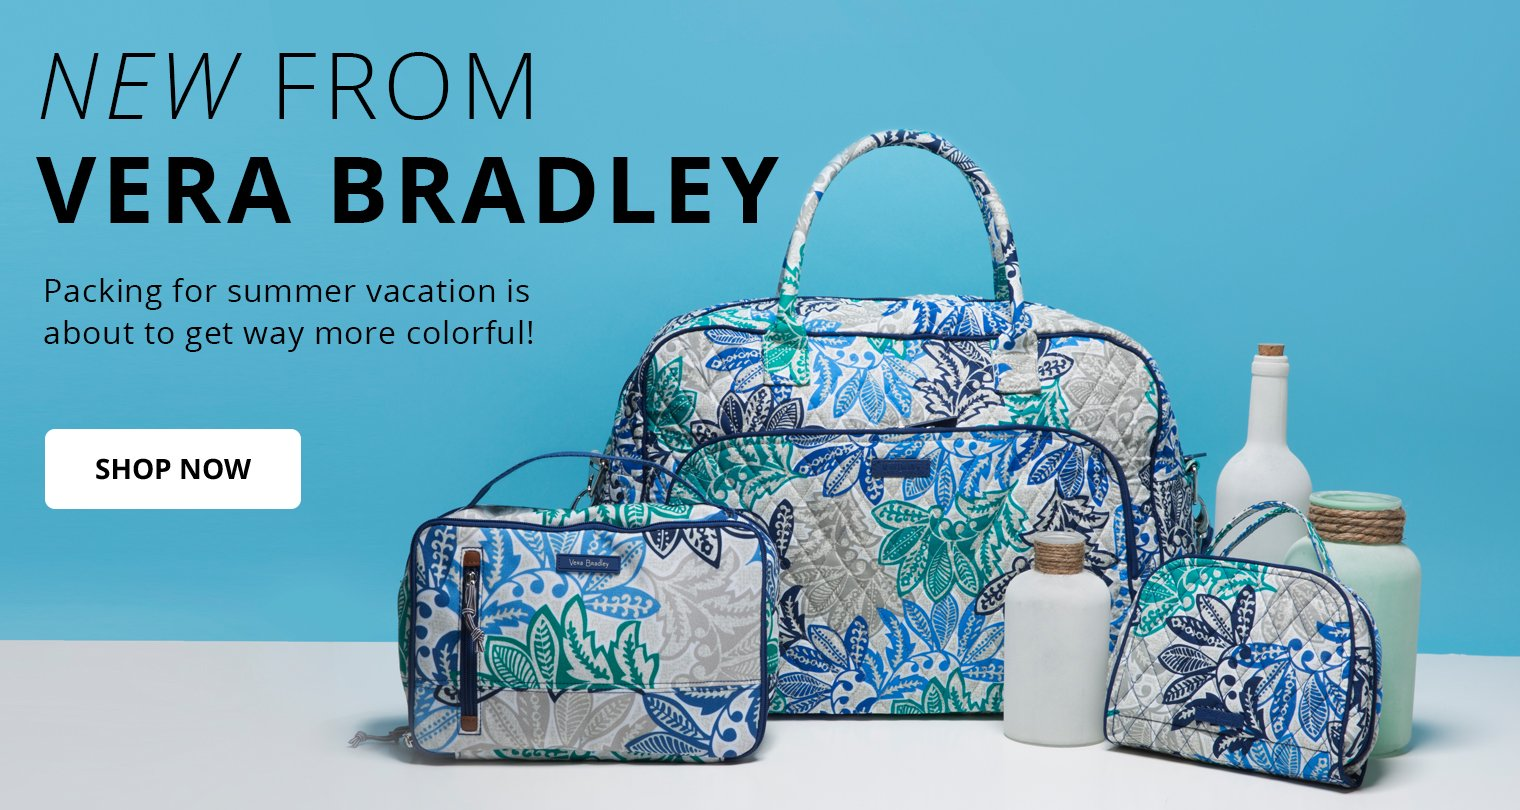 New from Vera Bradley. Packing for summer vacation is about to get way more colorful! Shop Now